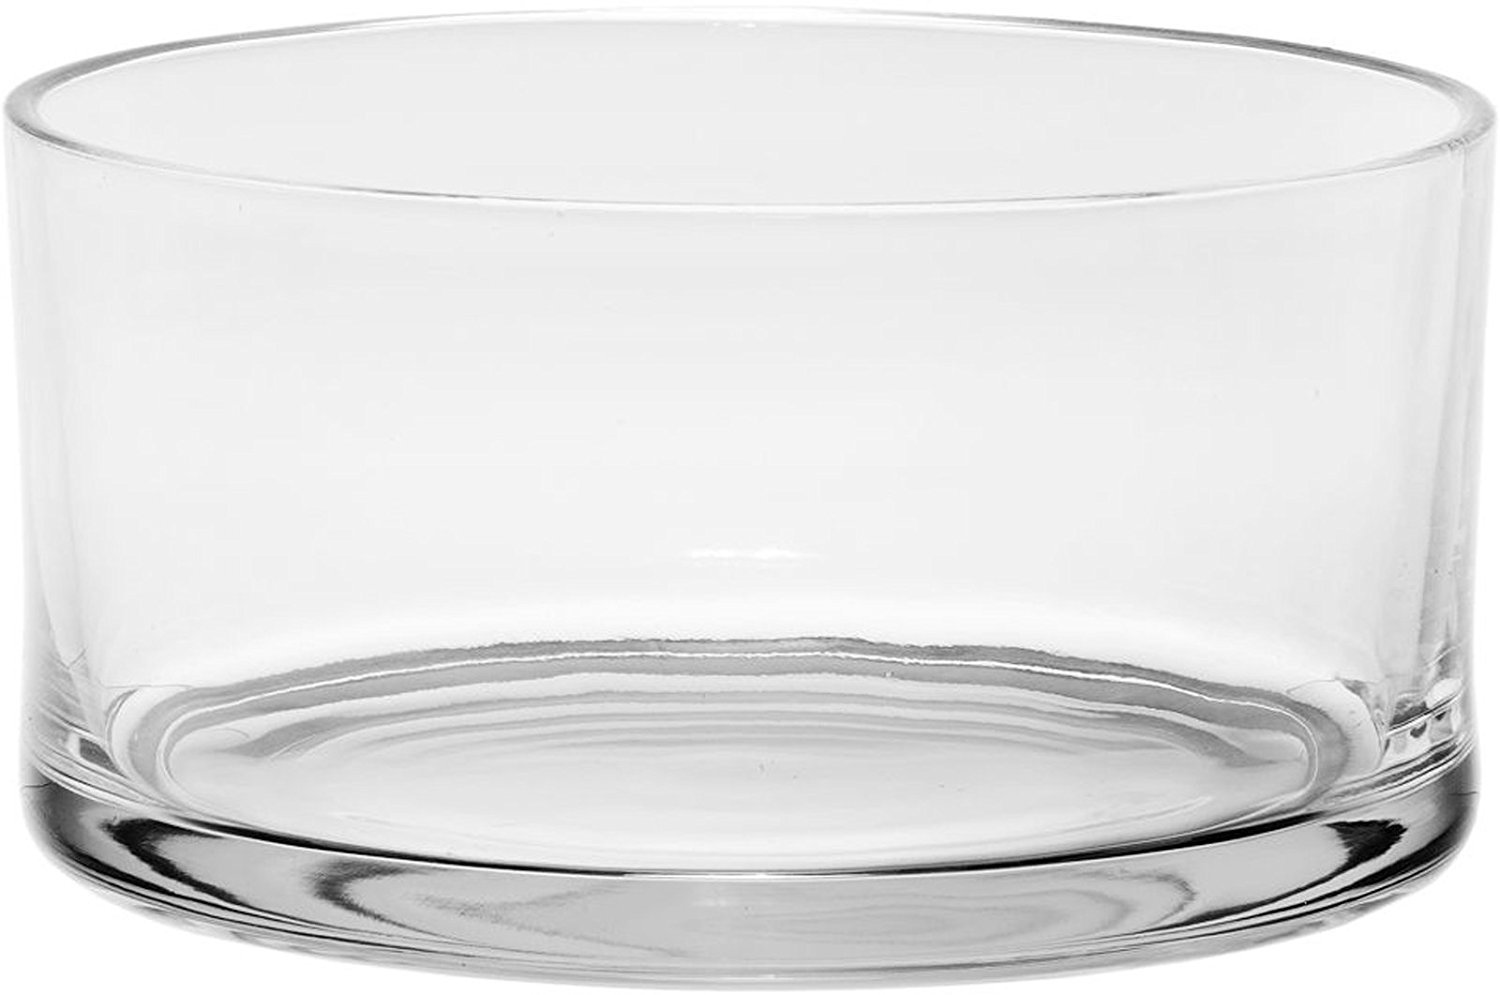 #1 High Quality Large Glass Round Salad Bowl - Serving Dish - 120 Oz. Clear HE SYNCHKG125836